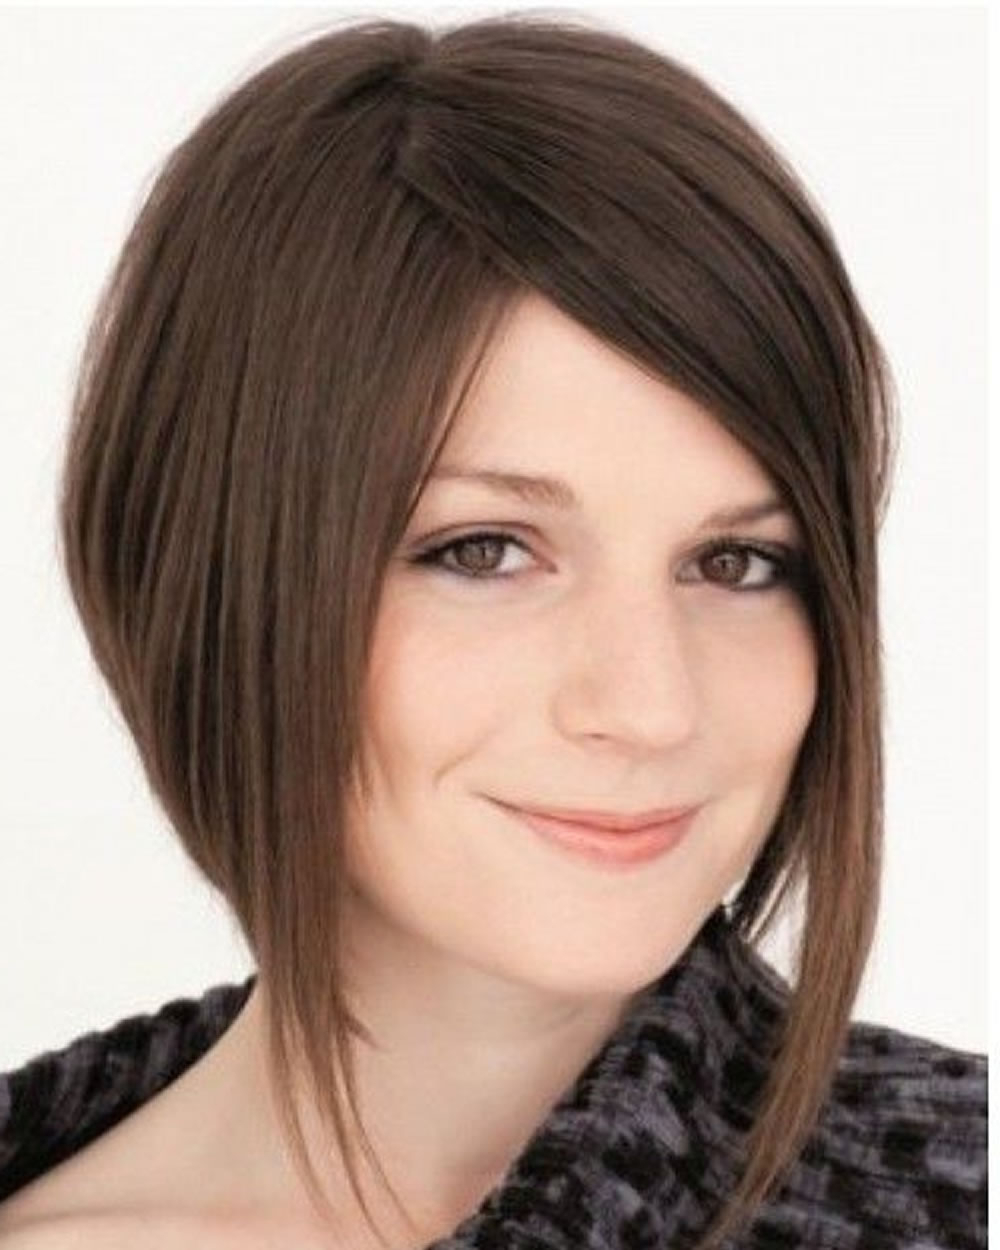 33 Best Short Bob Haircuts With Bangs And Layered Bob Hairstyles With Regard To Layered Short Hairstyles With Bangs (View 15 of 25)